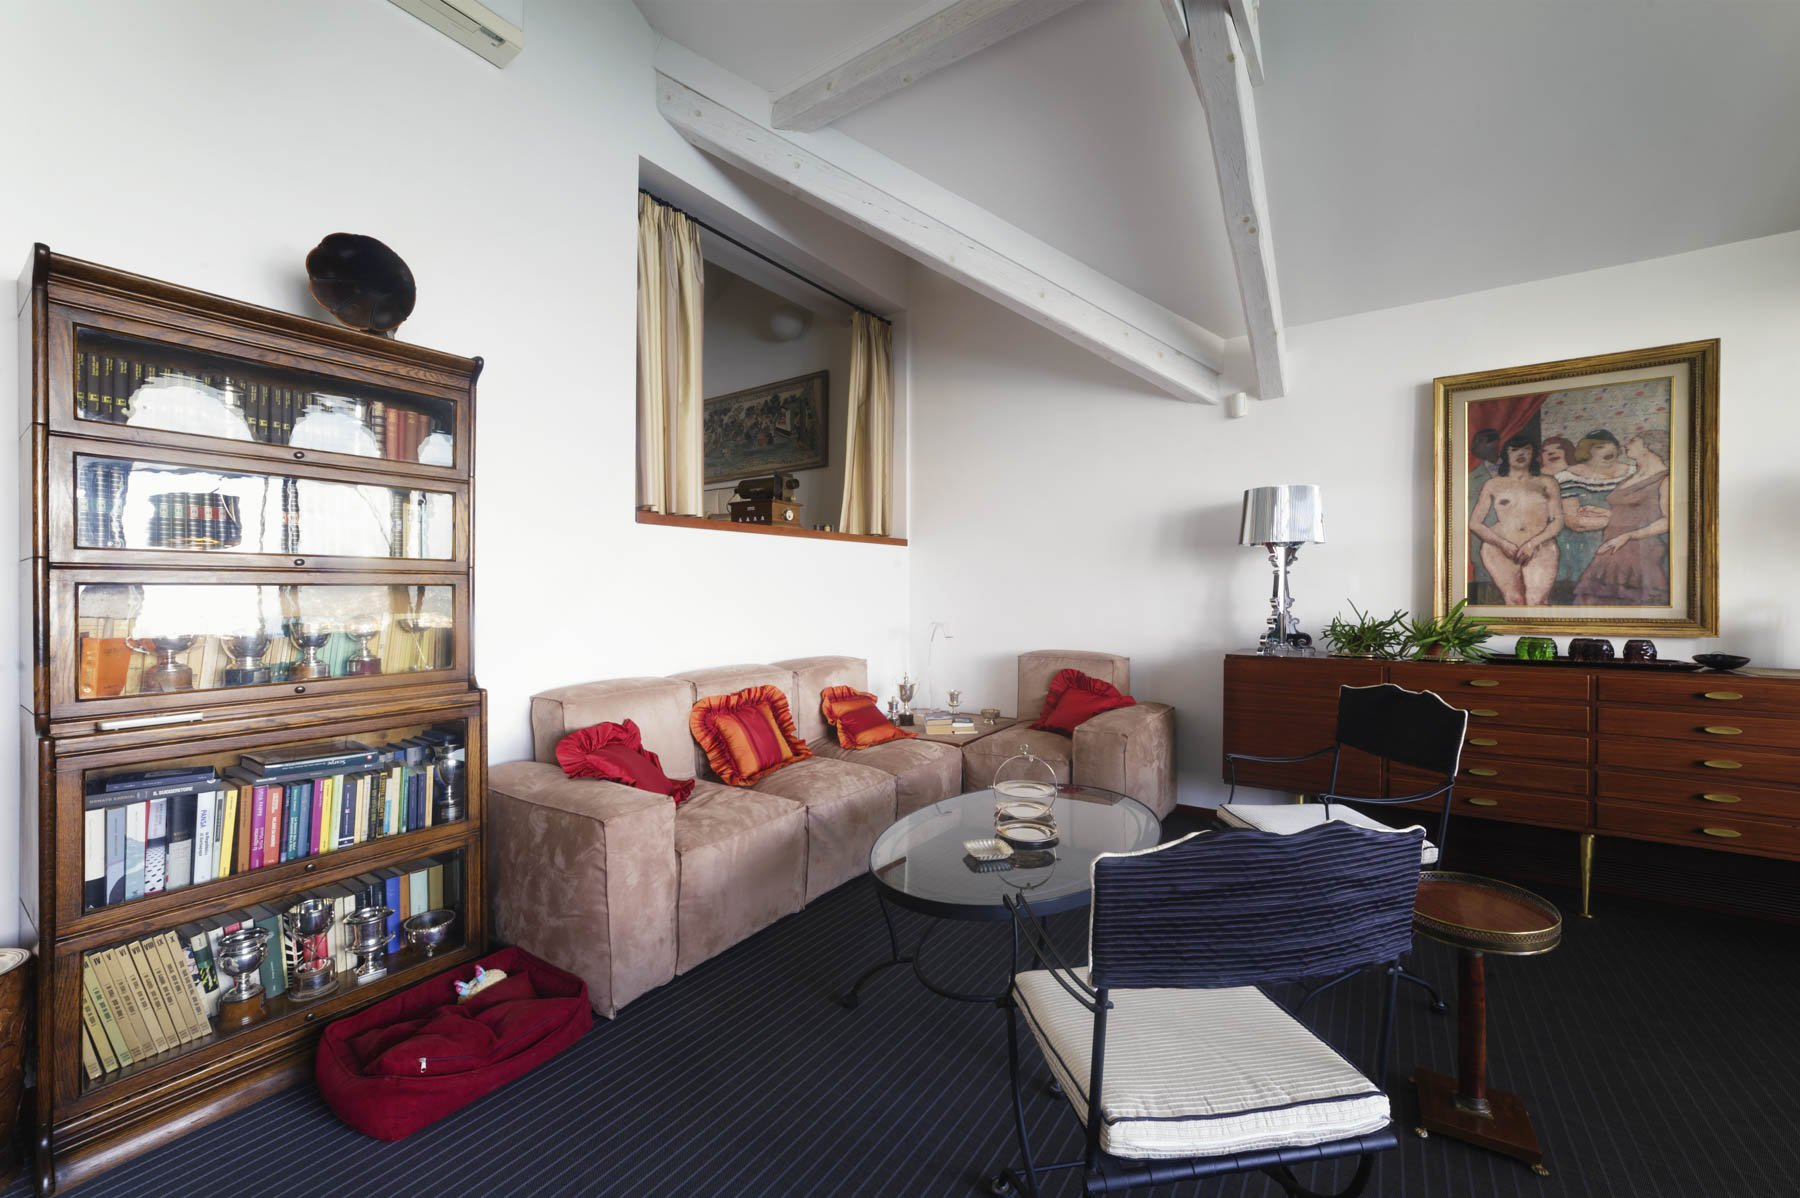 Apartment for sale in Baveno, inside a historic lake front villa - sitting room